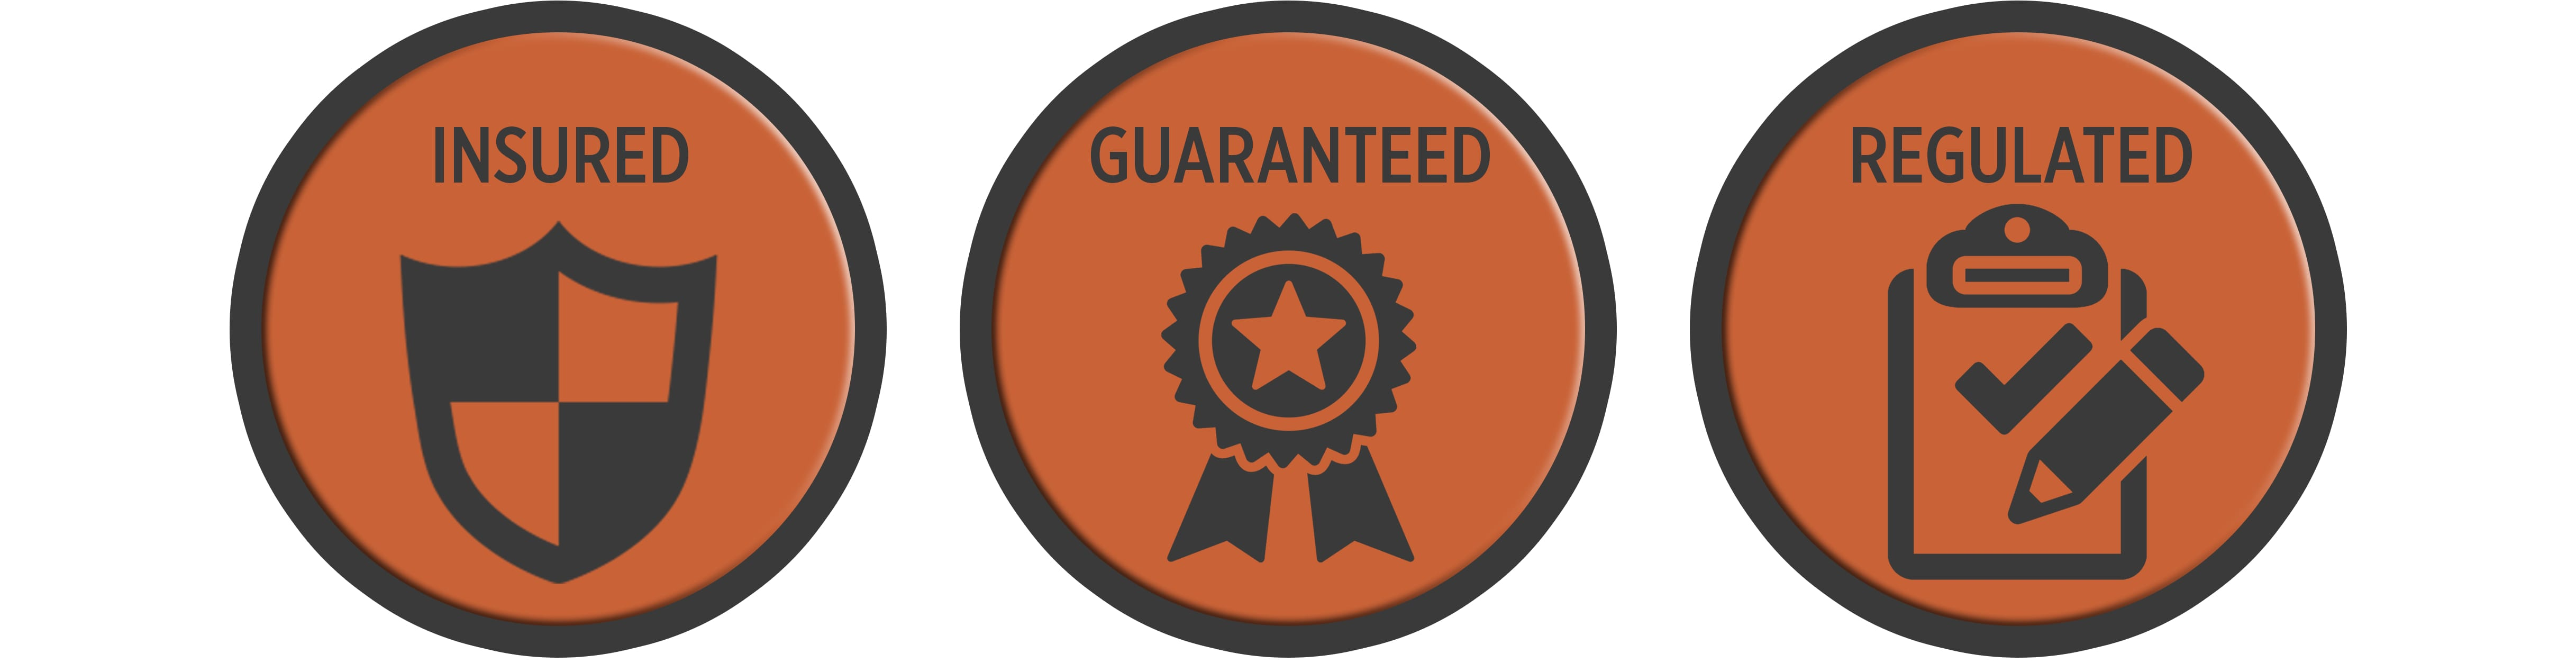 Grenda Builders - image Insured-Guaranteed-Regulated on http://grendabuilders.com